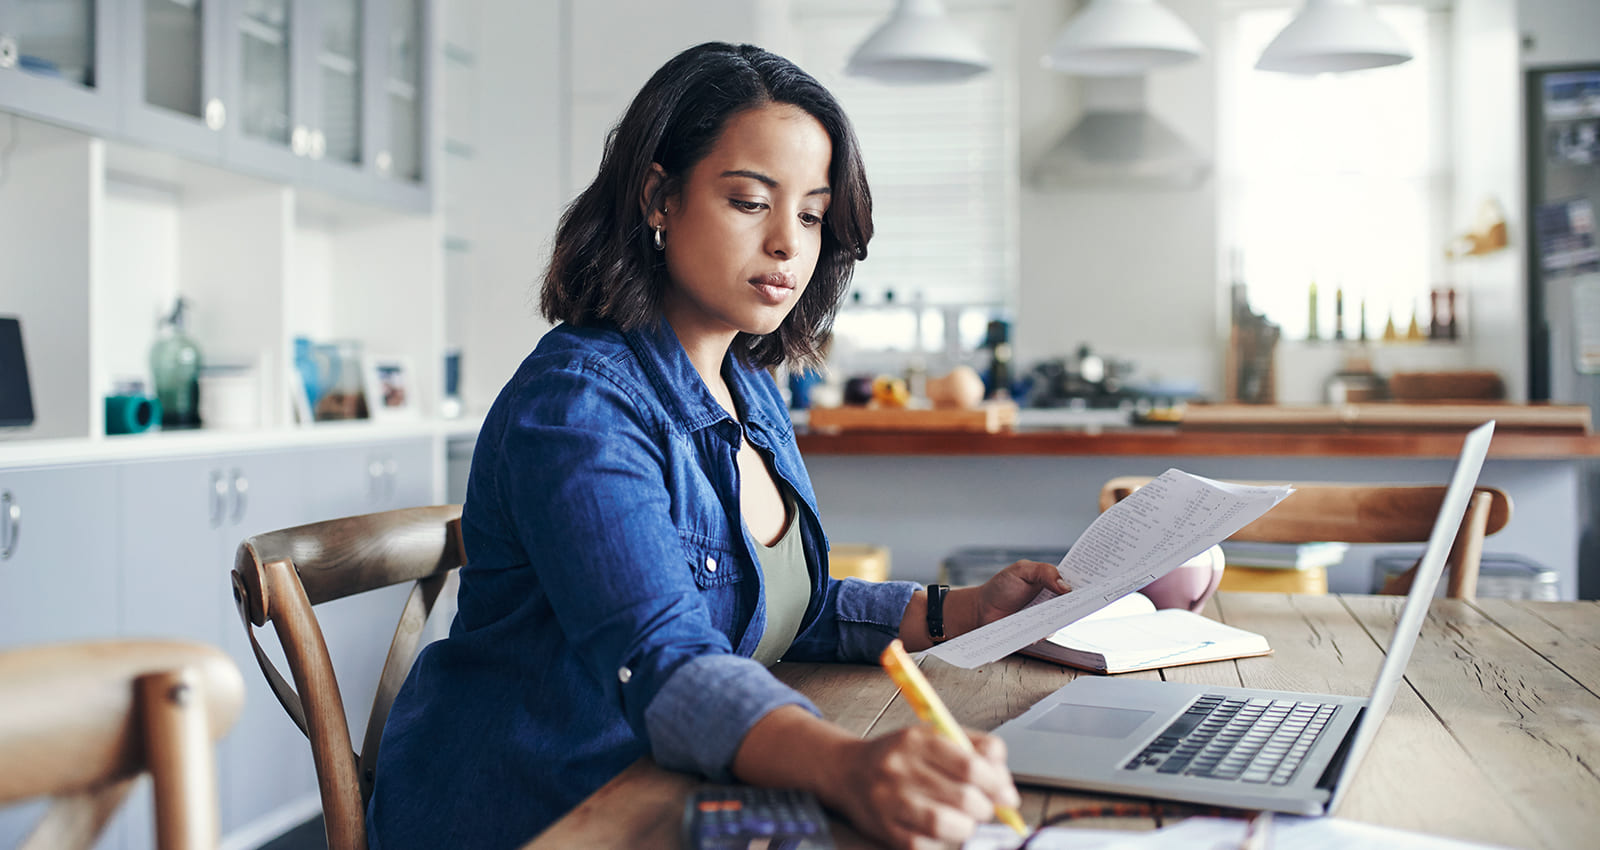 woman working in home on laptop holding papers